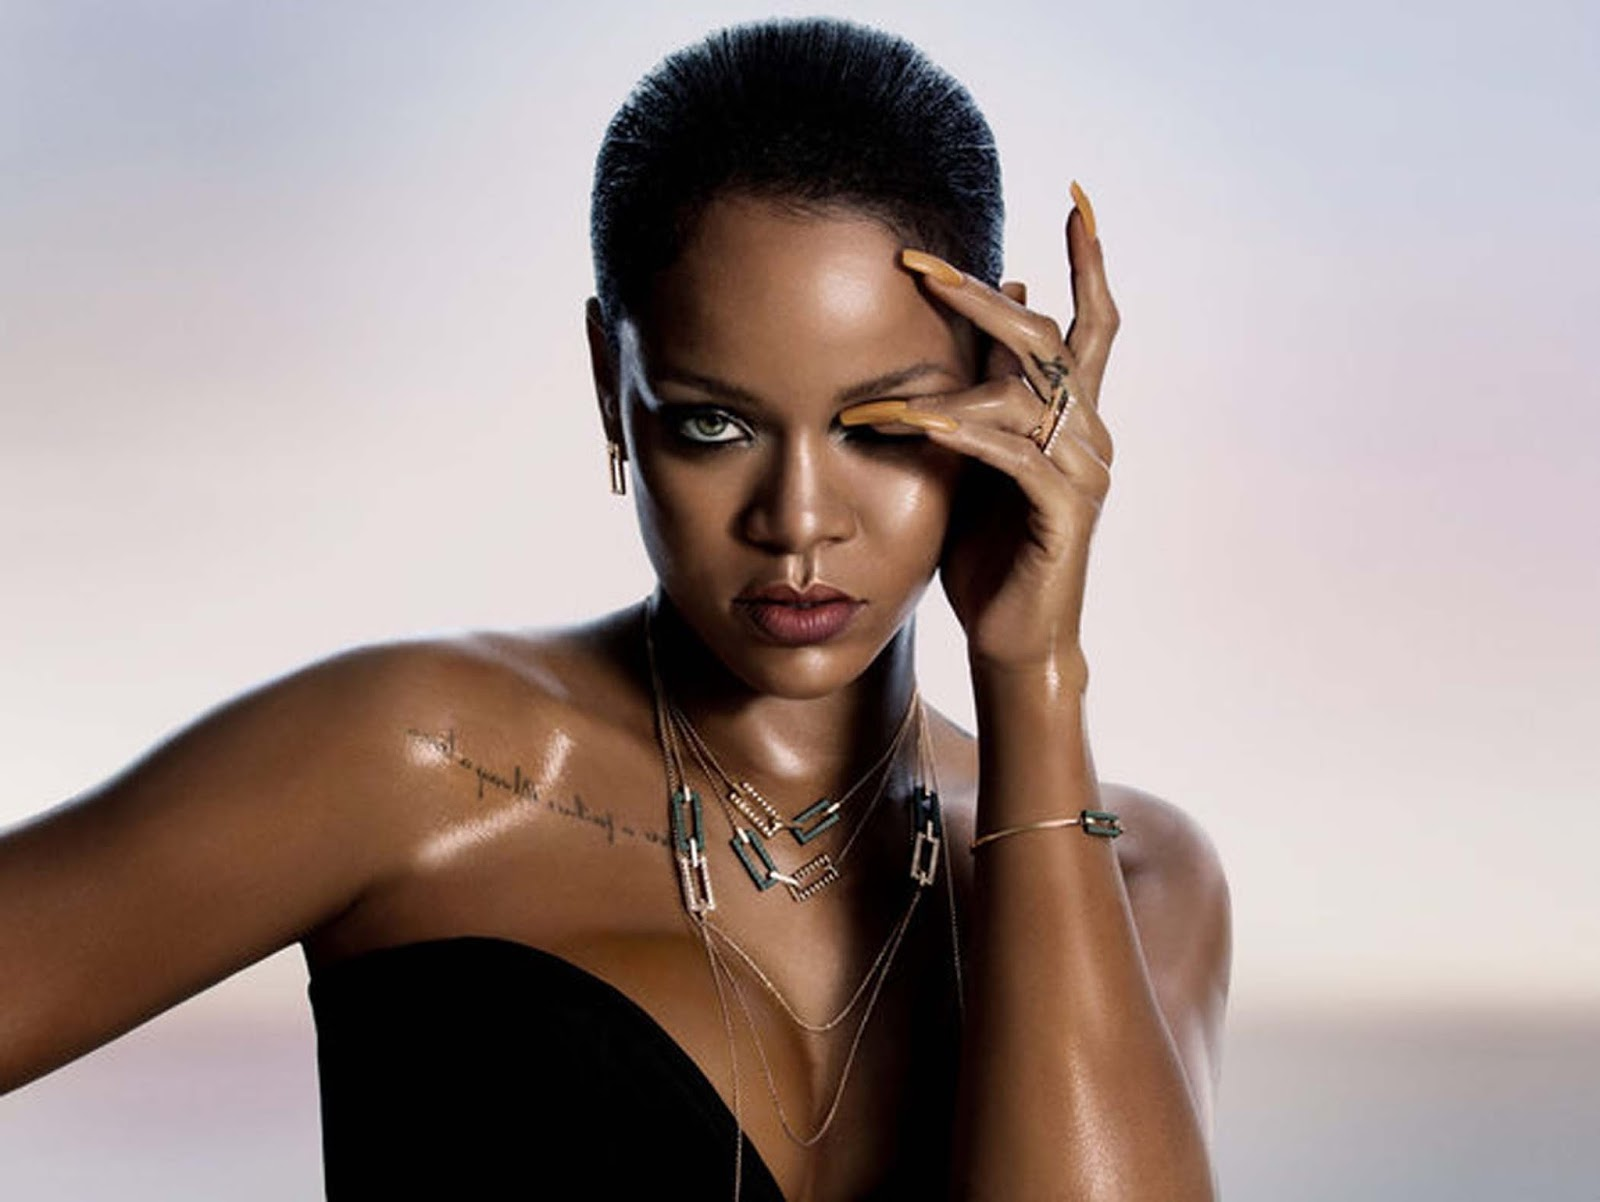 Novità moda aprile 2017 - Rihanna for Chopard - Eniwhere Fashion